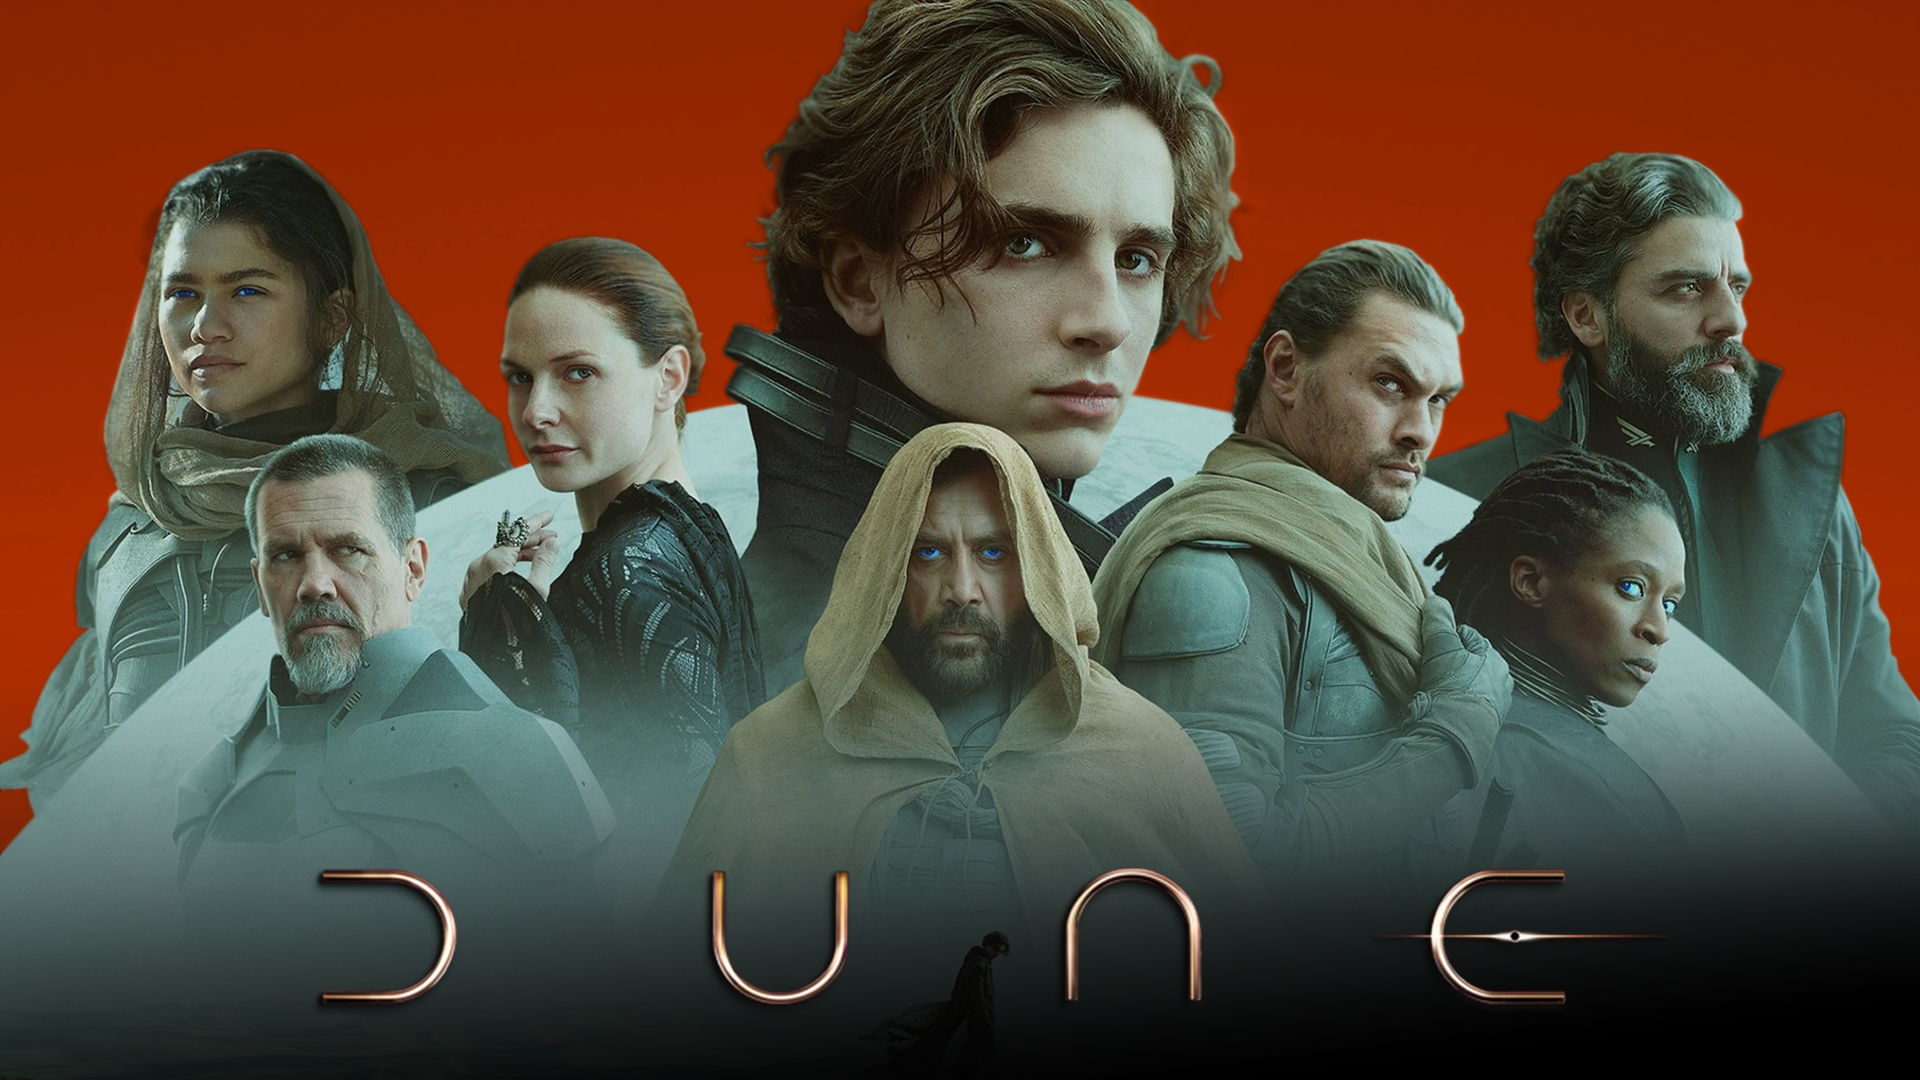 Dune is exactly the sci-fi epic we needed